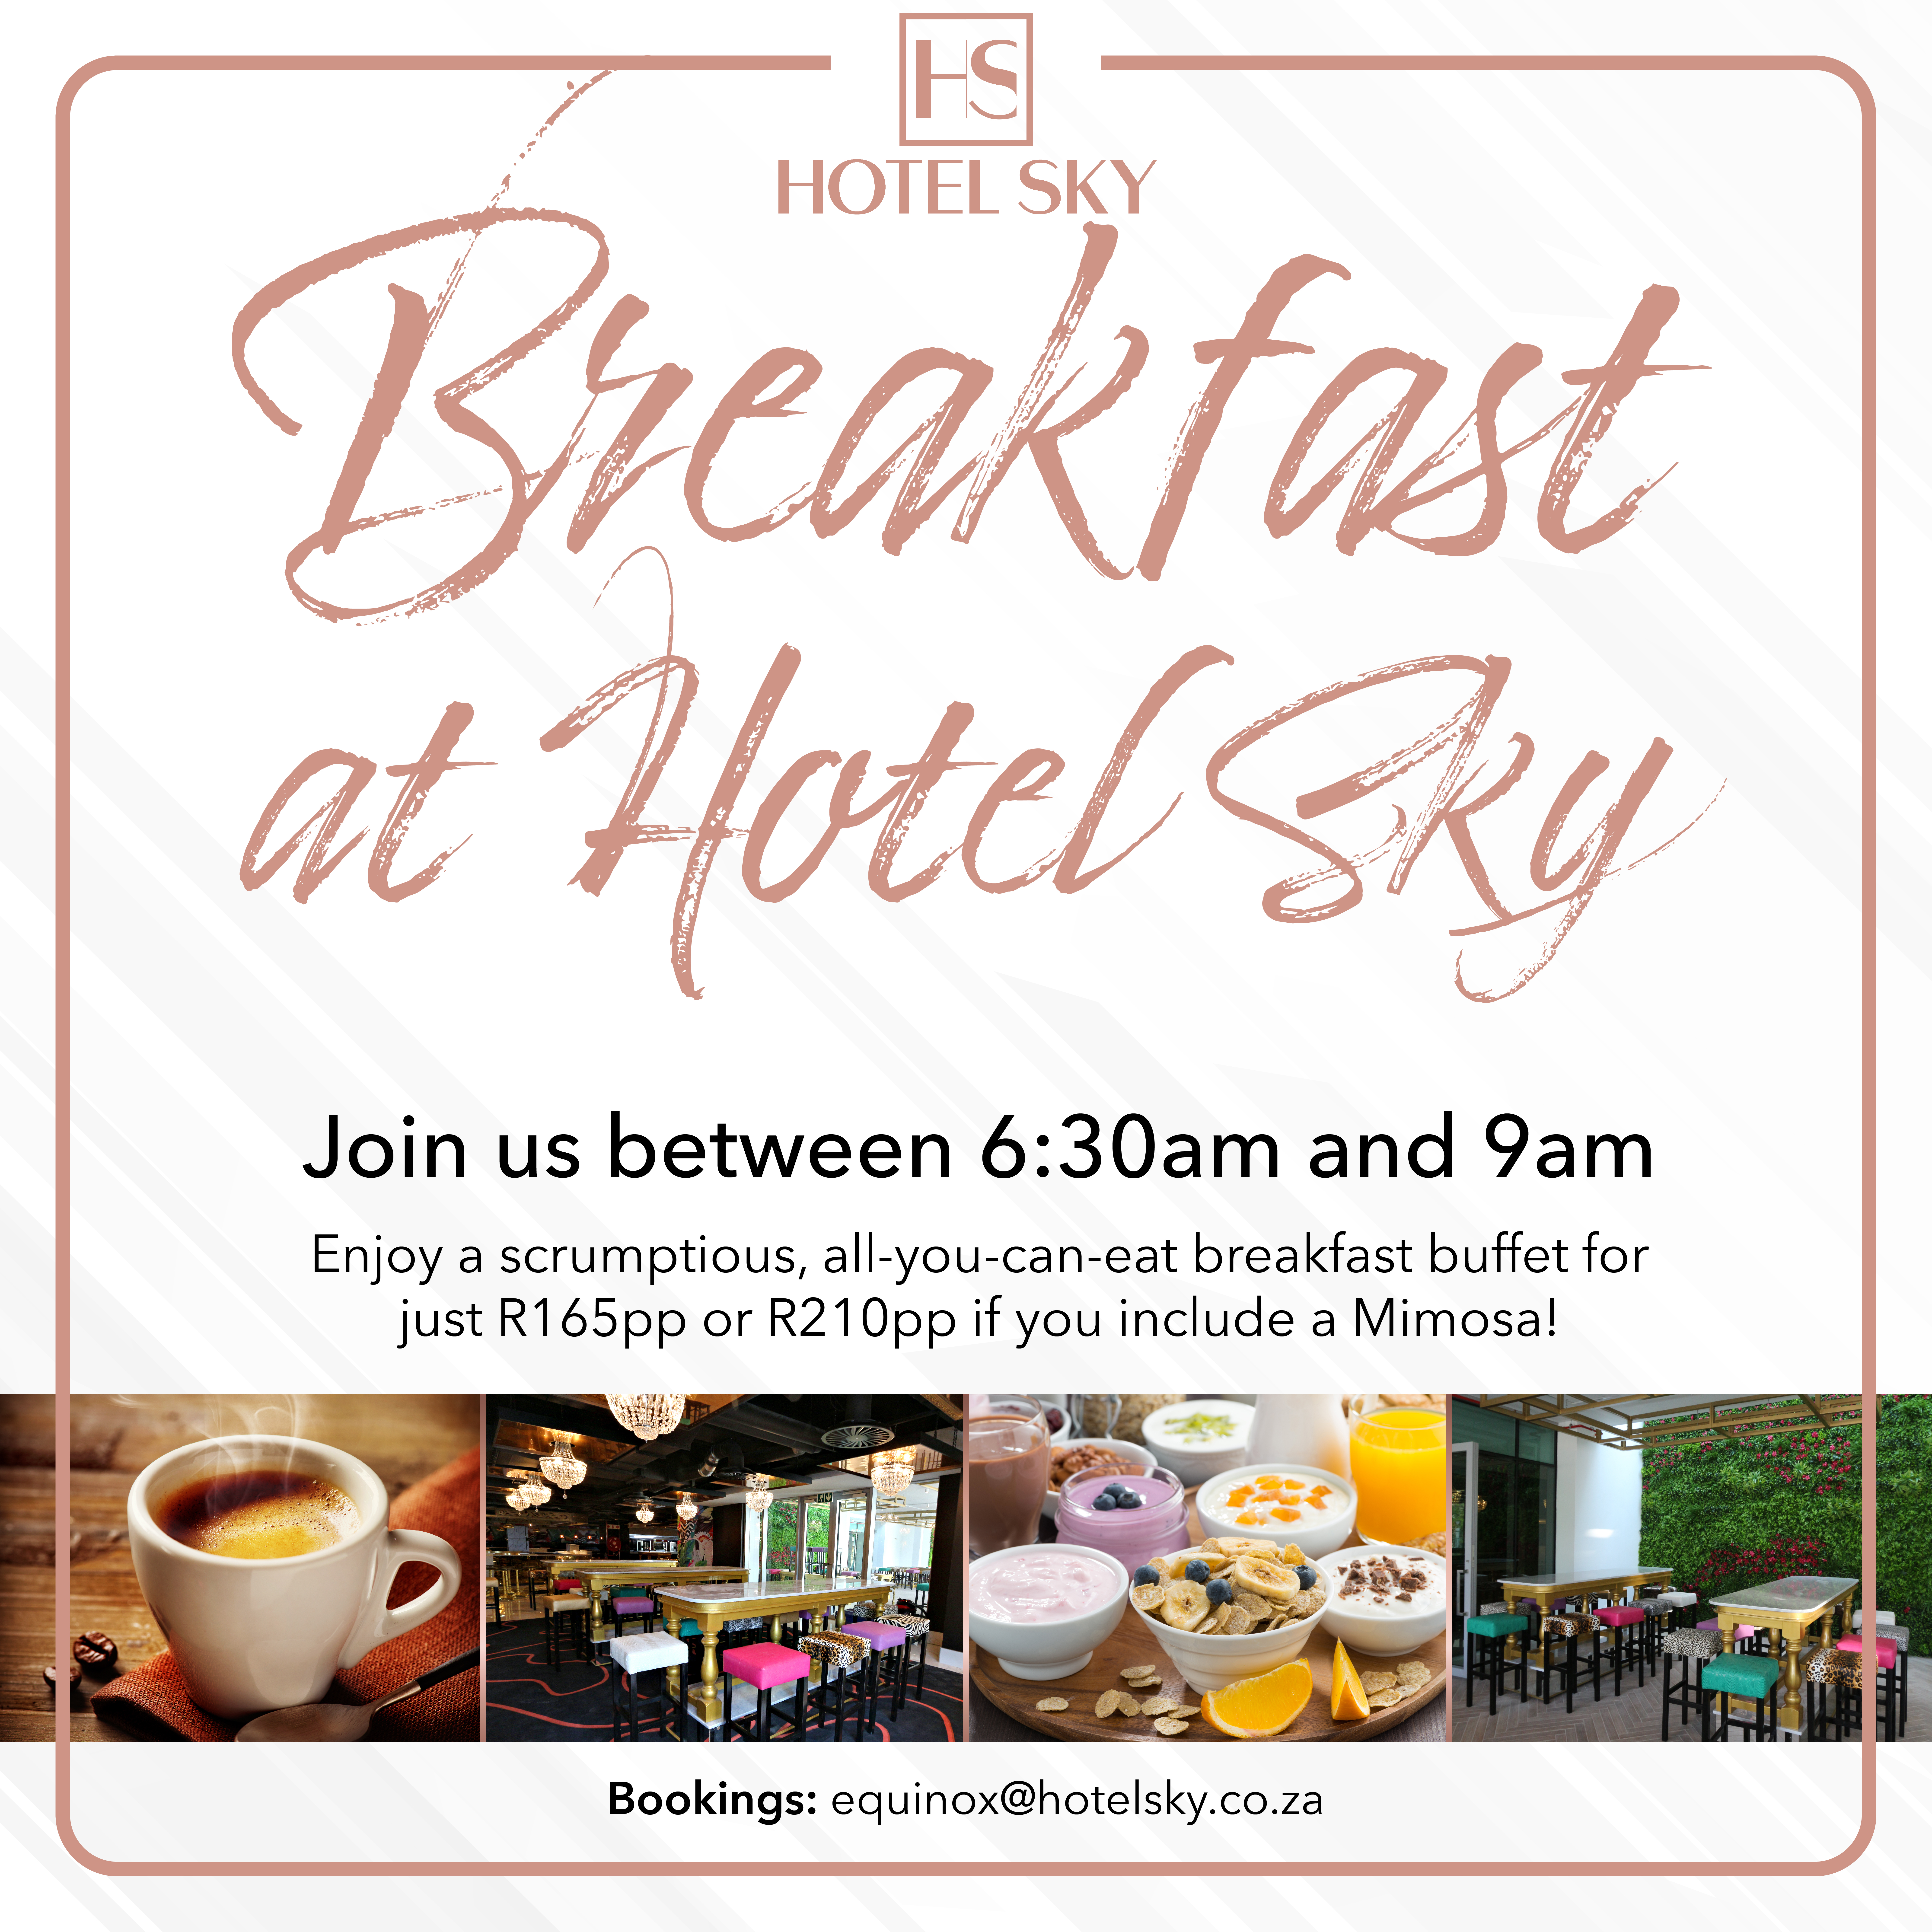 Breakfast buffet at Hotel Sky is available to guests and visitors daily until 9am